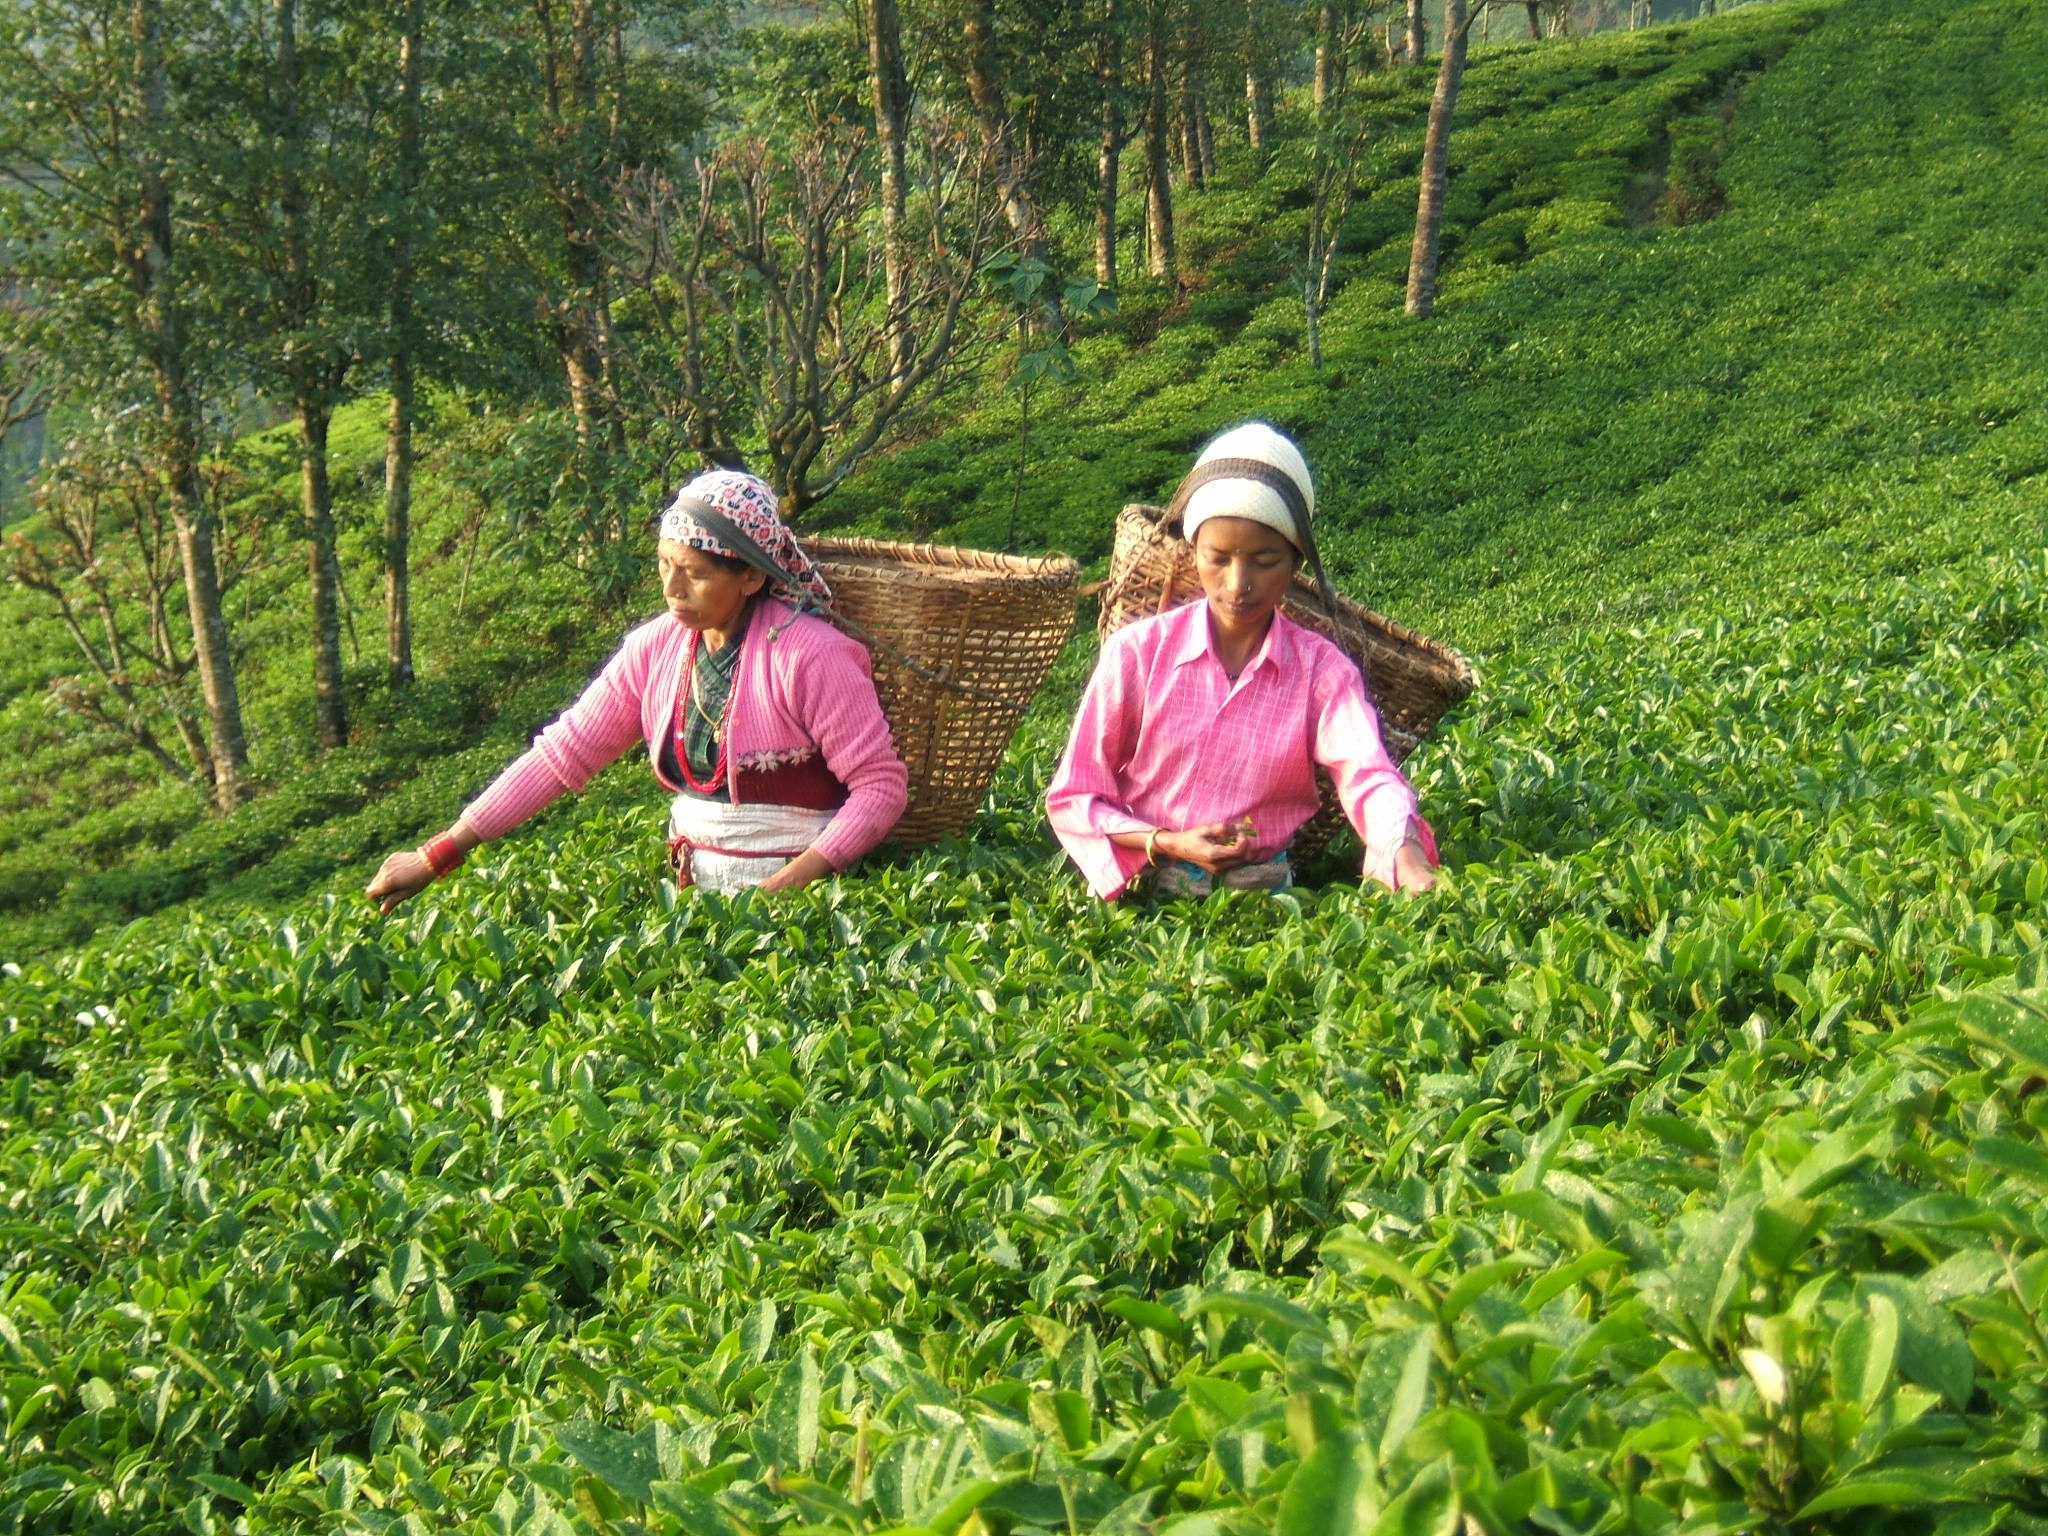 Tea plantationcrops in Arunachal Pradesh